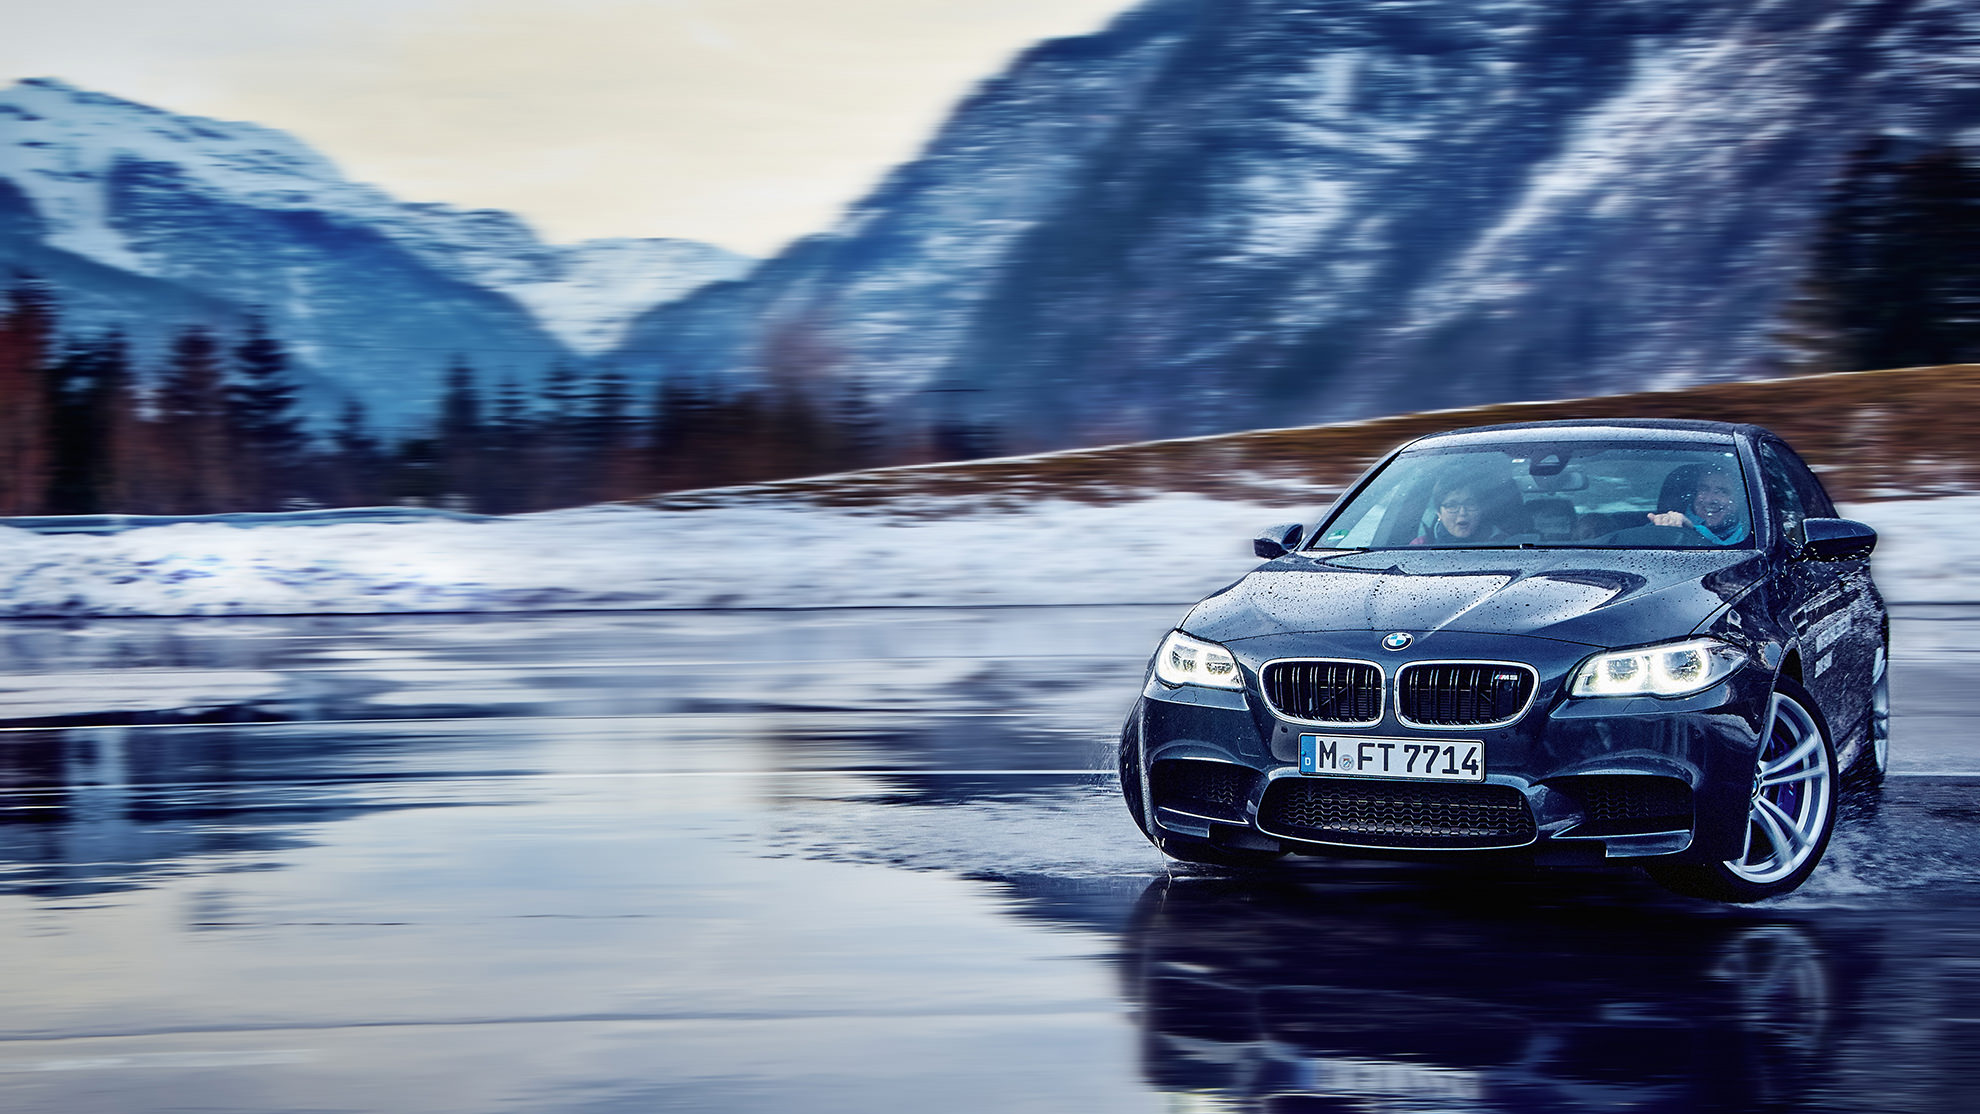 BMW_Bank_DLB_Winter_Challenge_2016_003888